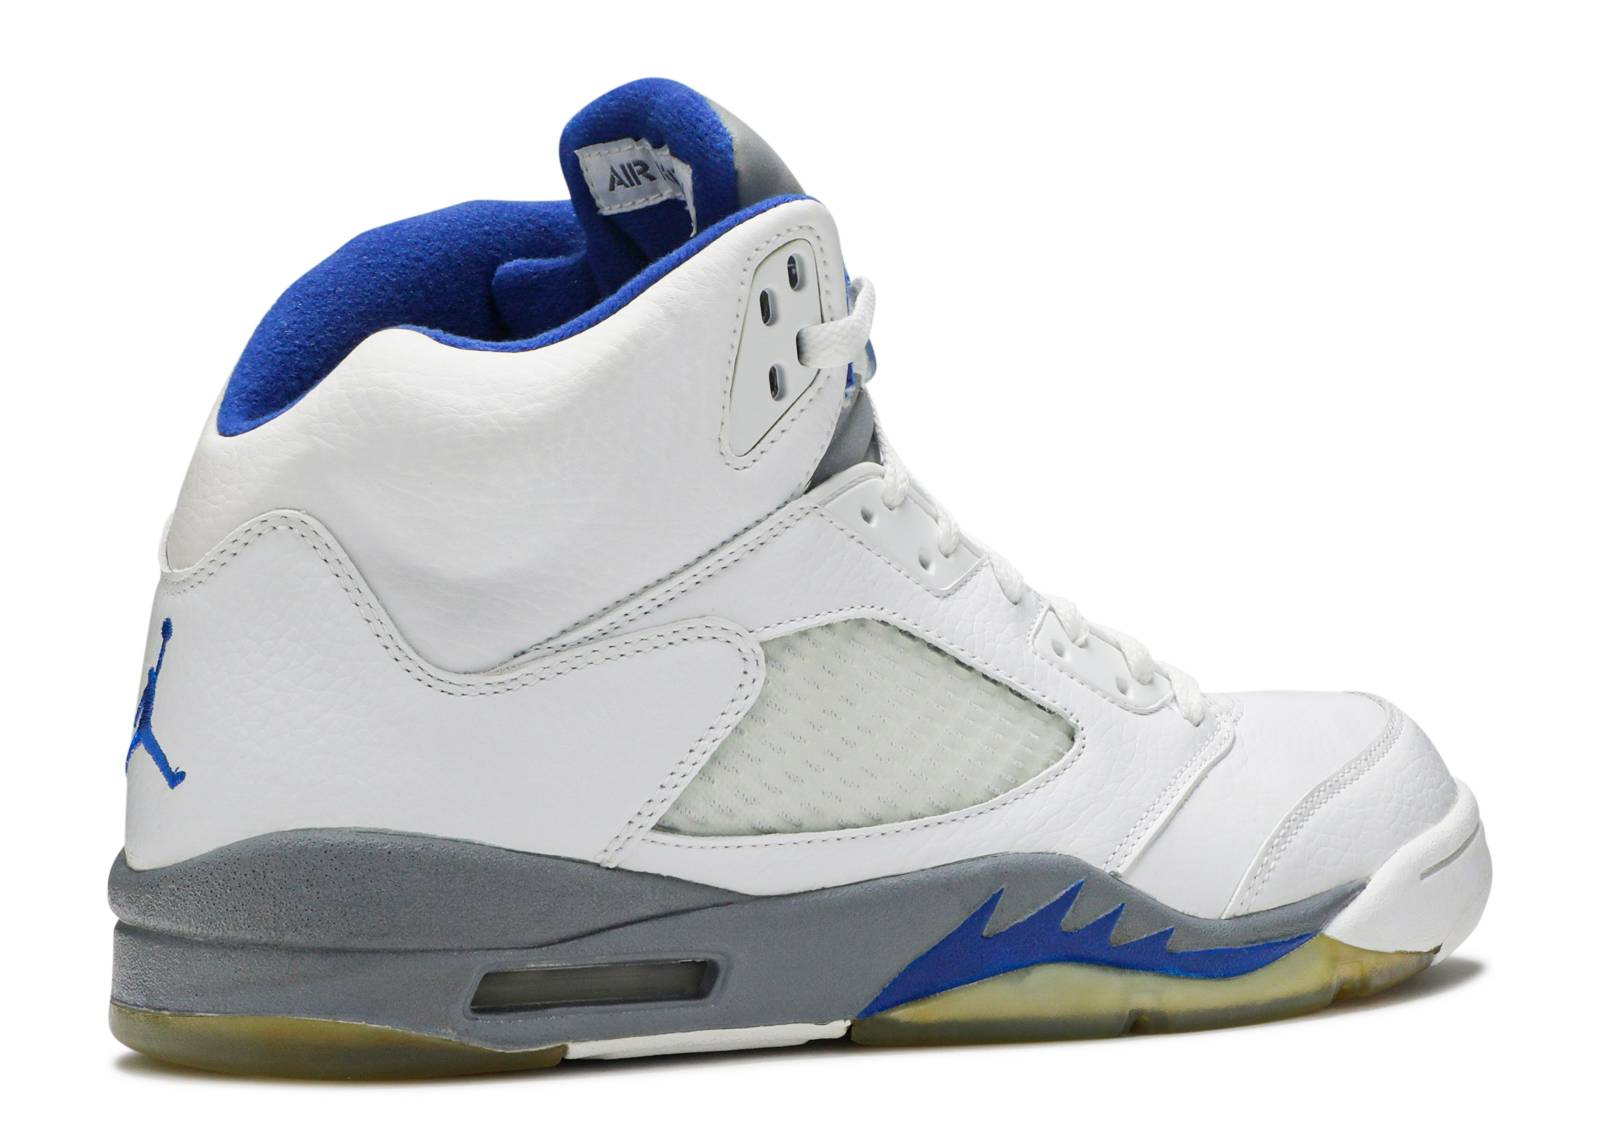 b339a02984d883 Acquista jordan 5 blue white